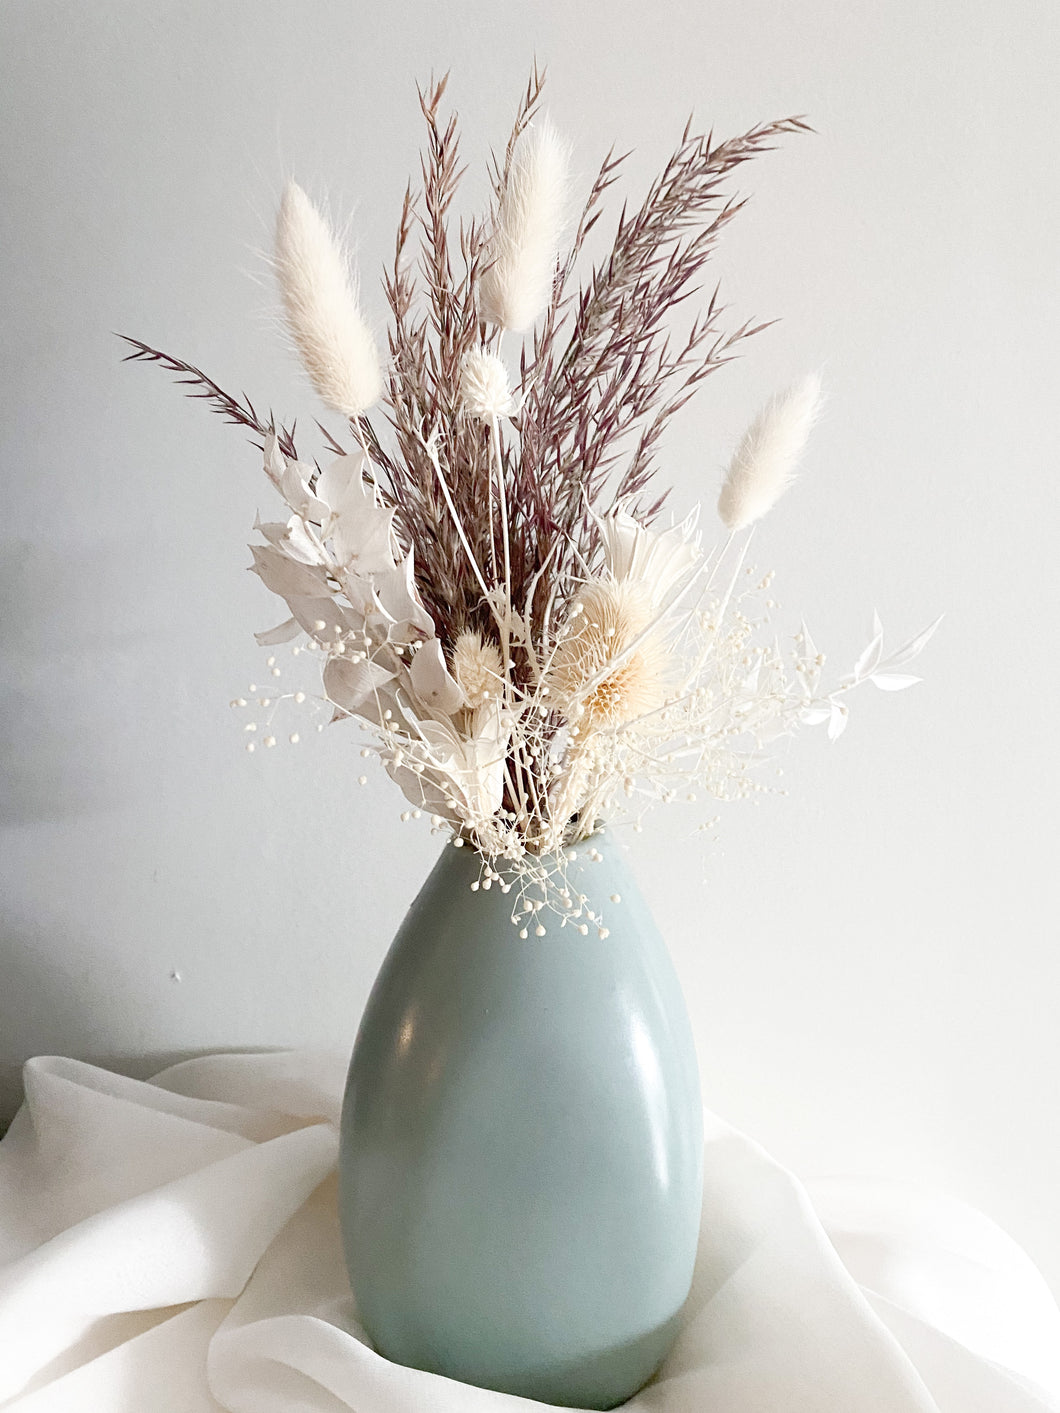 The Robin Egg Vase